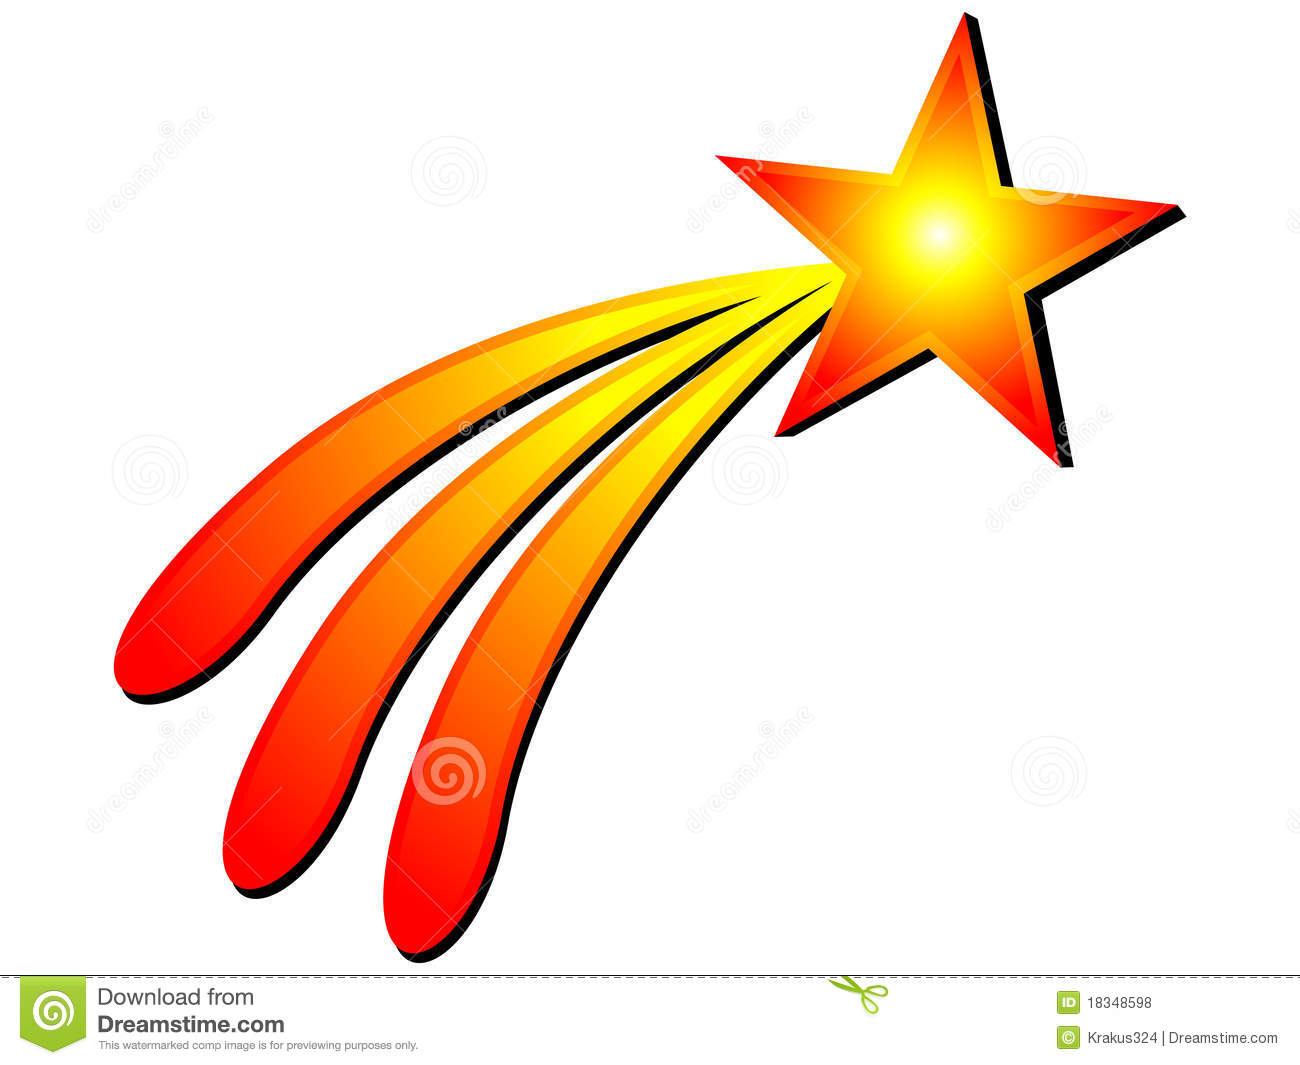 9+ Shooting Star Clipart Free.